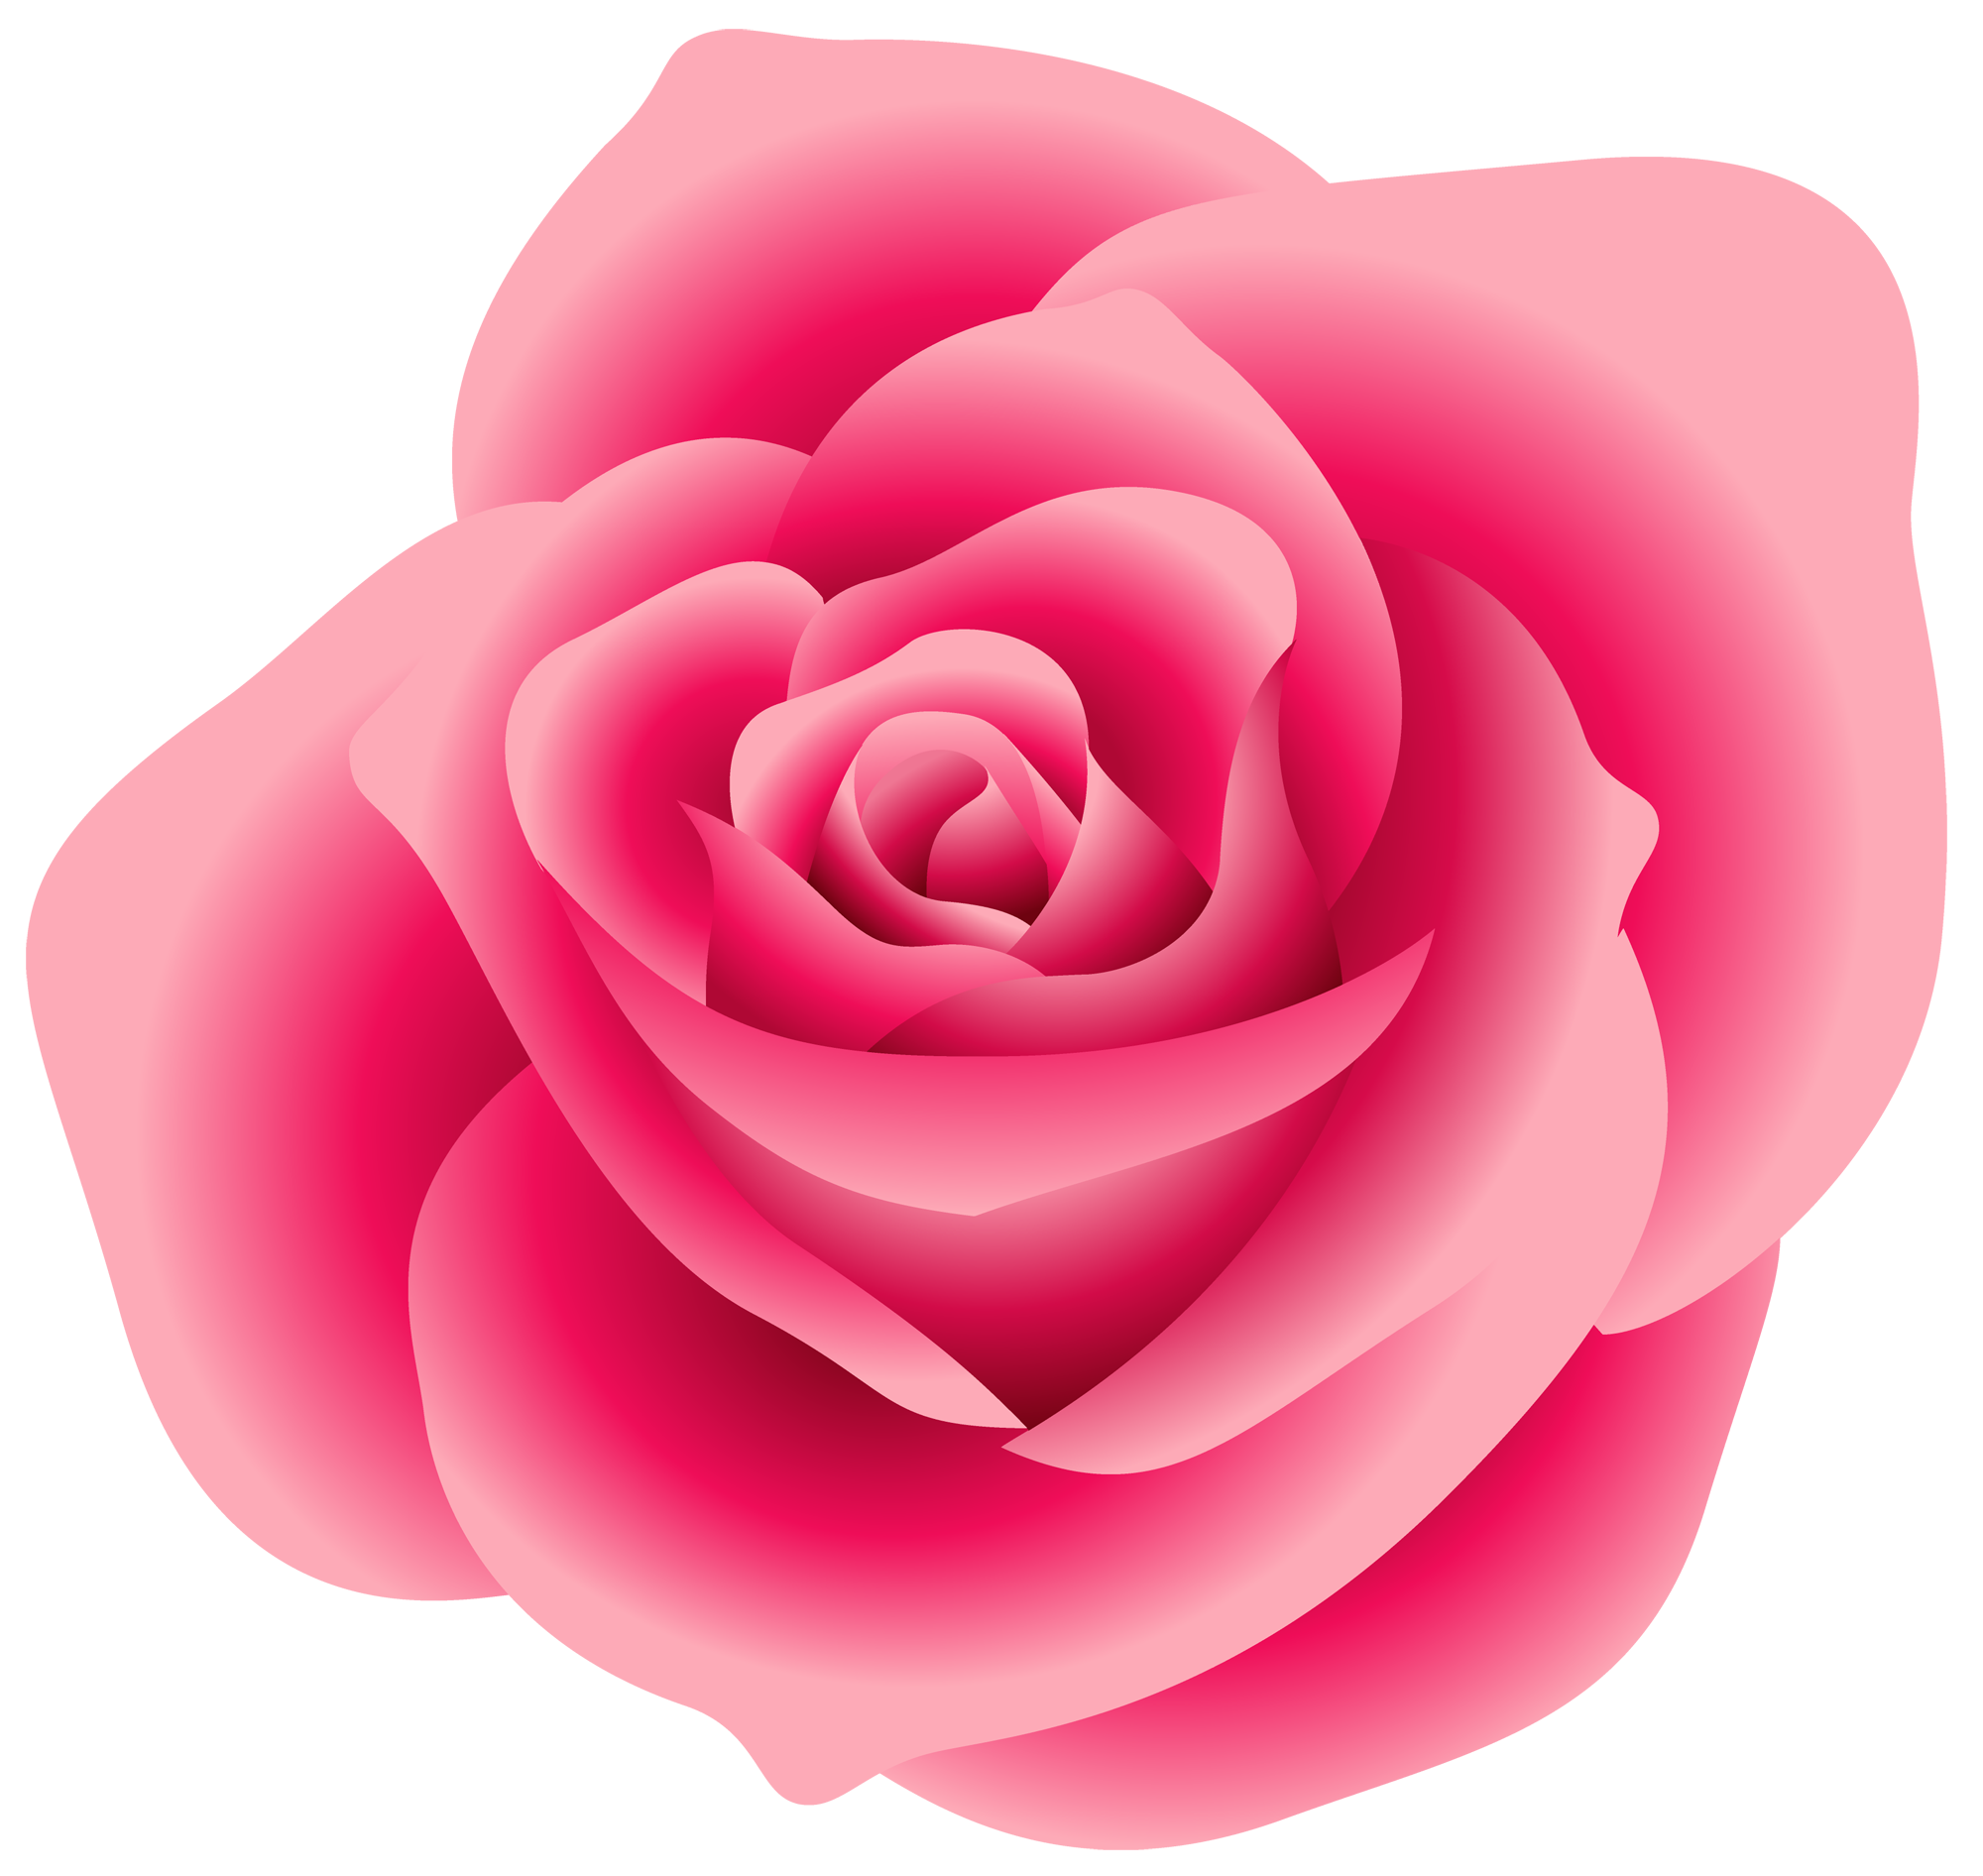 Pink roses clipart #17